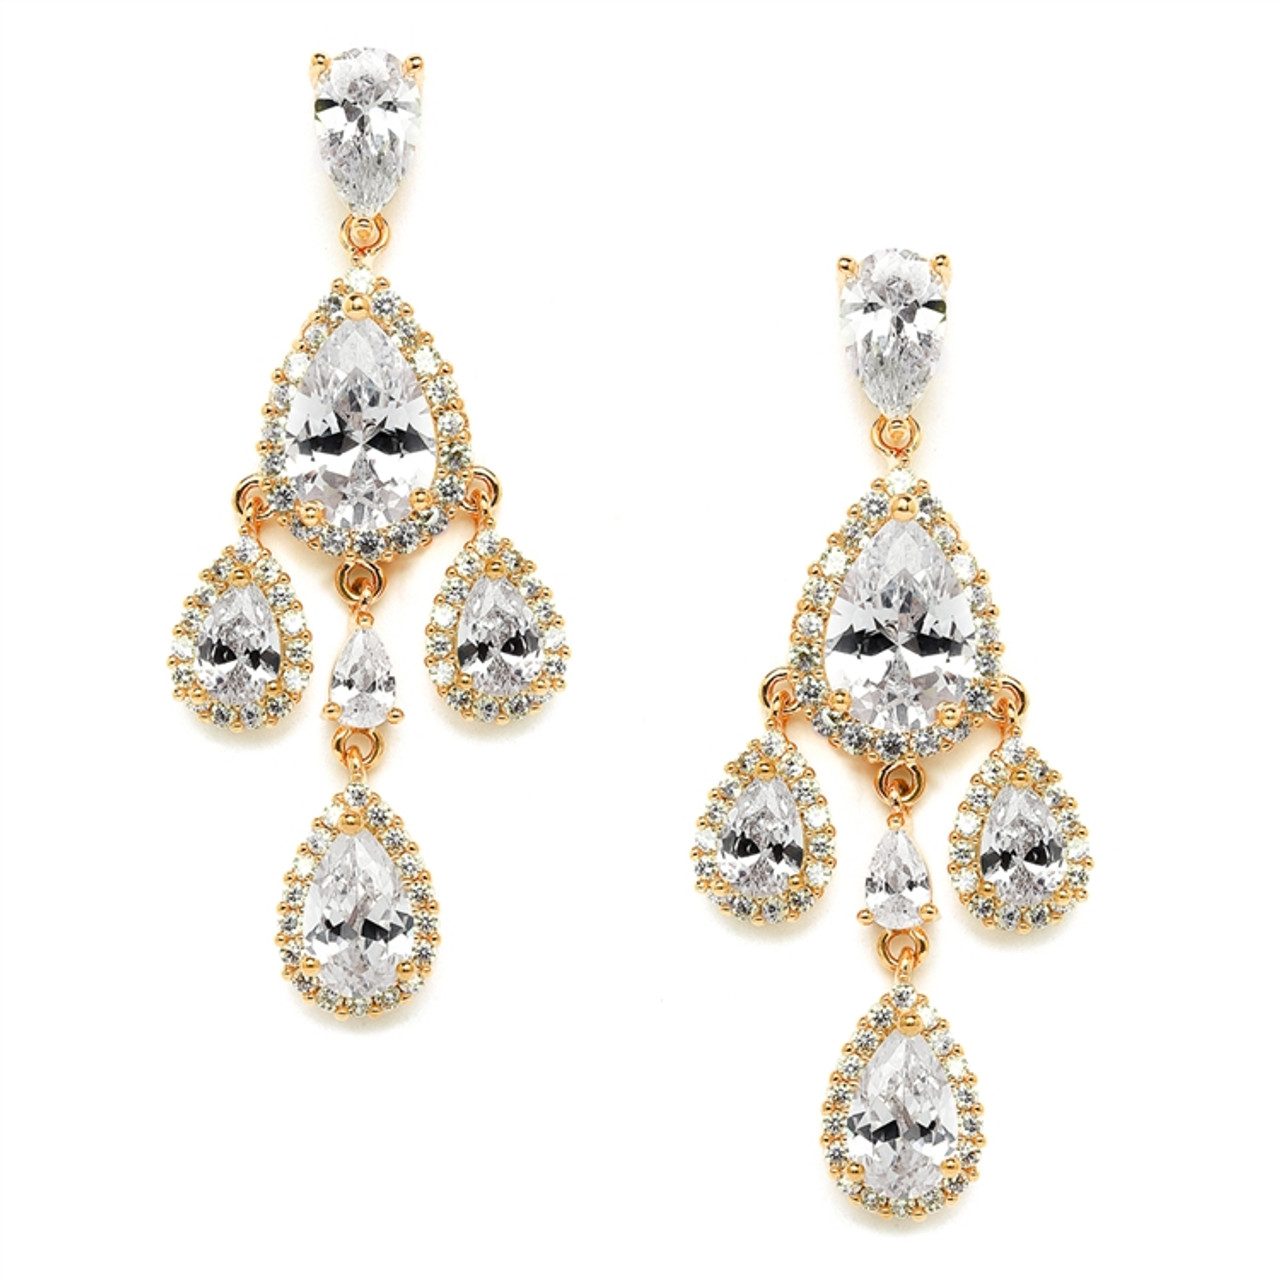 Mariell Petite Gold Clip On CZ Chandelier Earrings with Pear-Shaped Halo Teardrops 4555EC-G